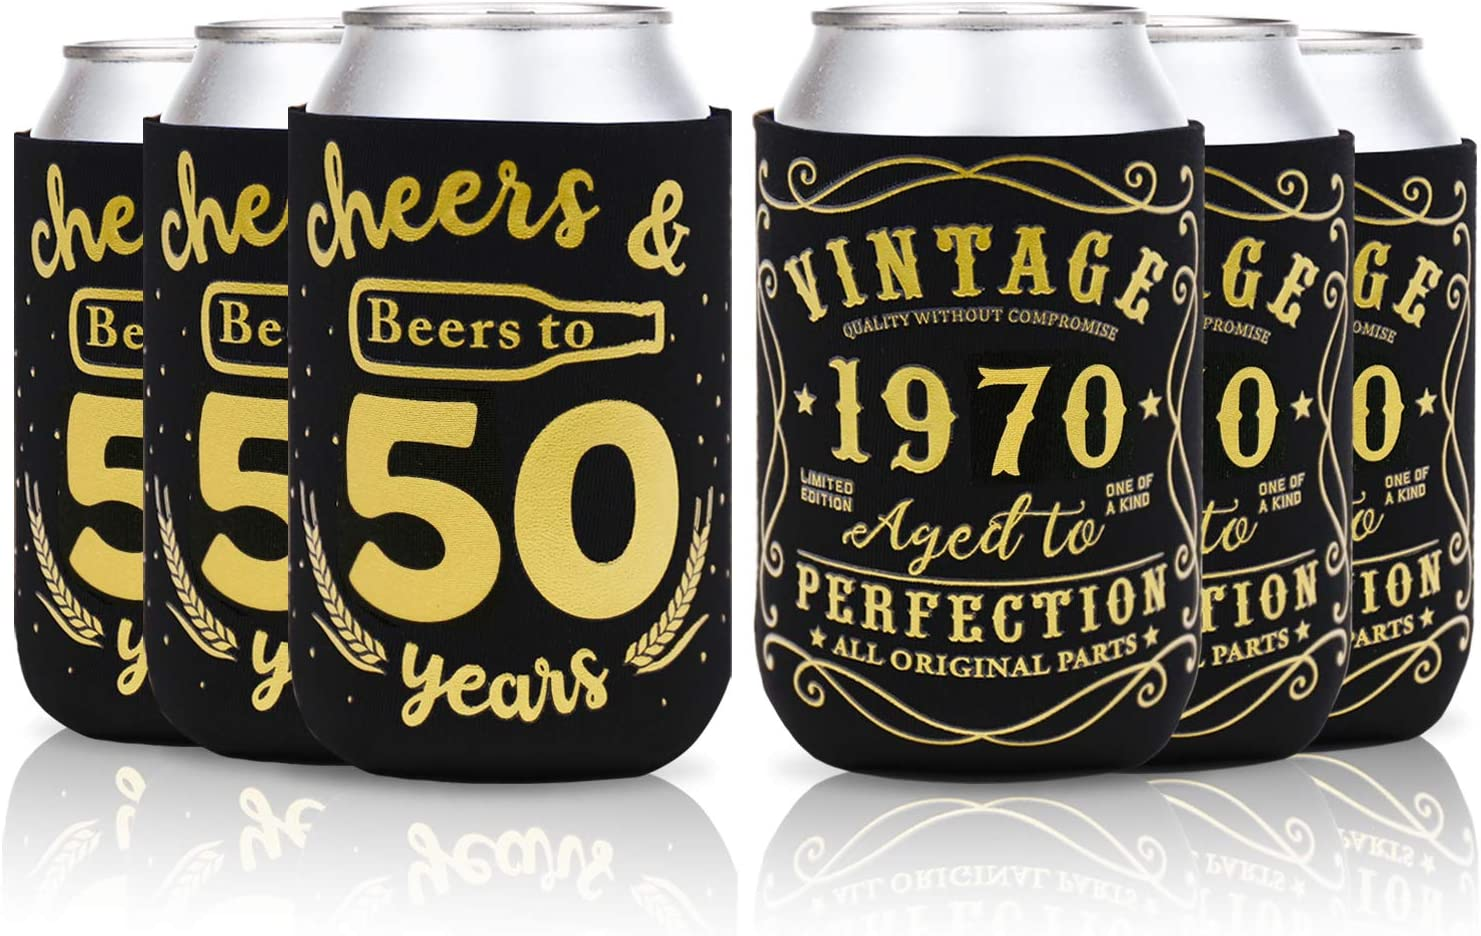 50th Birthday Party Favor Decorations Supplies Cheers & Beers to 50 Years Can Sleeves Vintage 1970 Can Cover Beer Sleeves Black and Gold Neoprene Sleeves for Soda Beer Can Beverage Set of 12